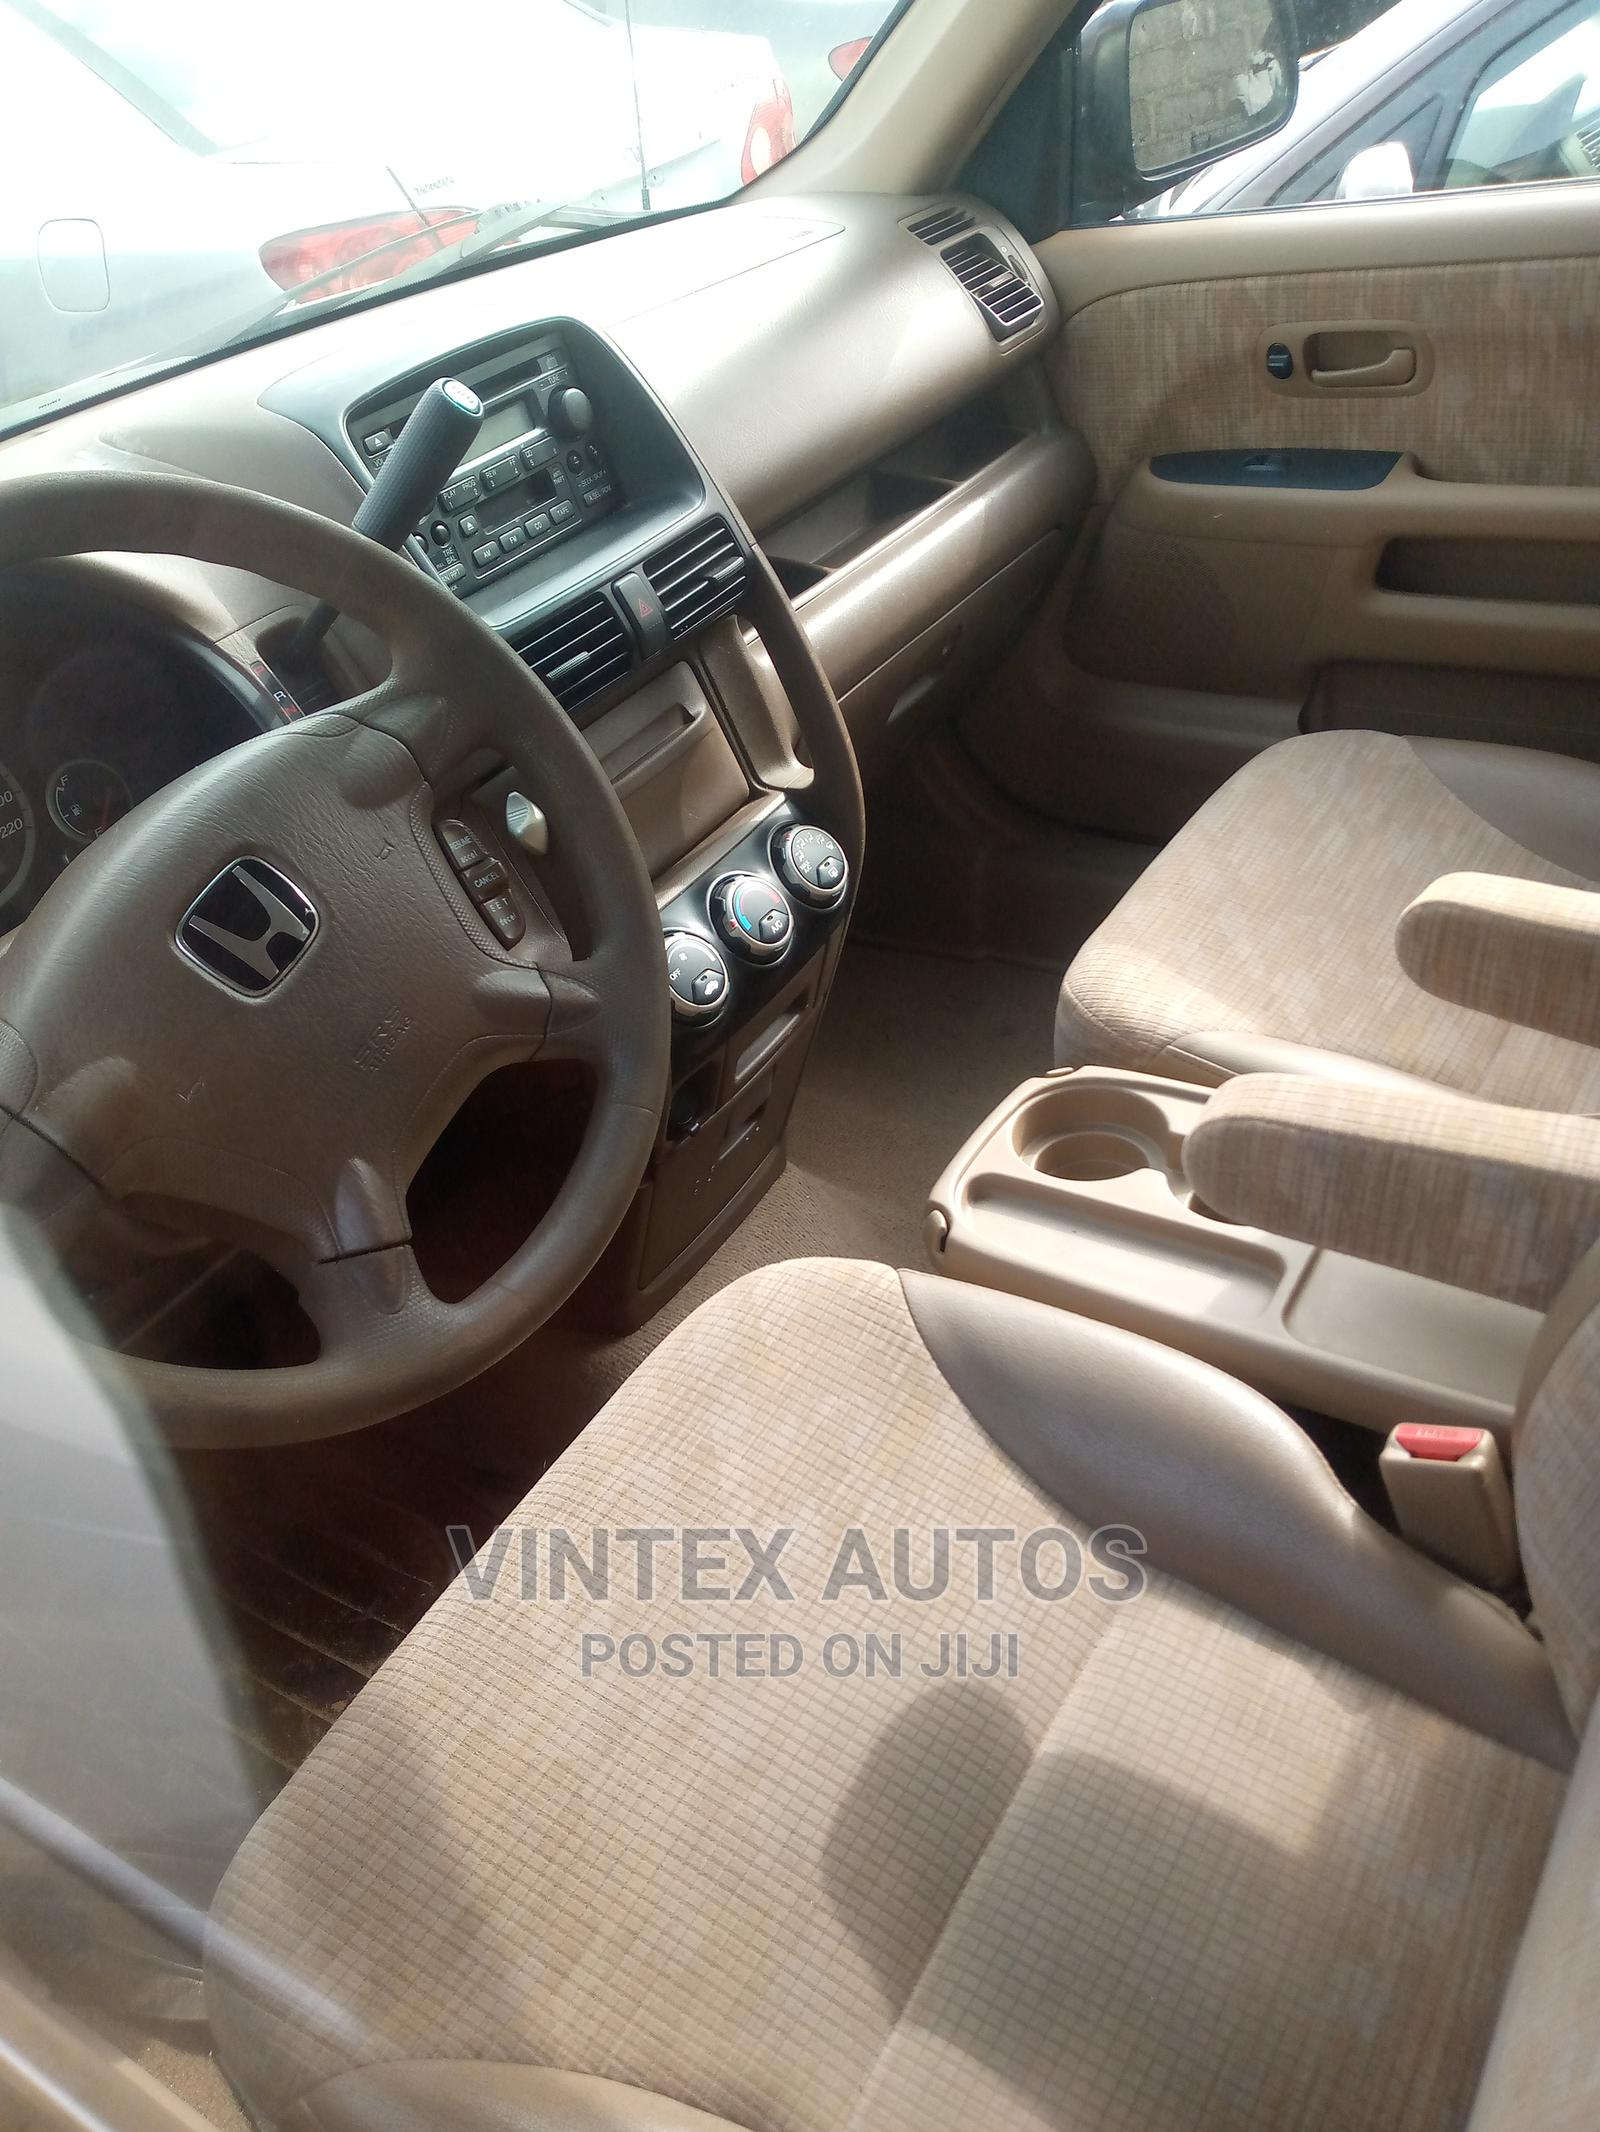 Honda CR-V 2004 2.0i ES Automatic Gold | Cars for sale in Amuwo-Odofin, Lagos State, Nigeria